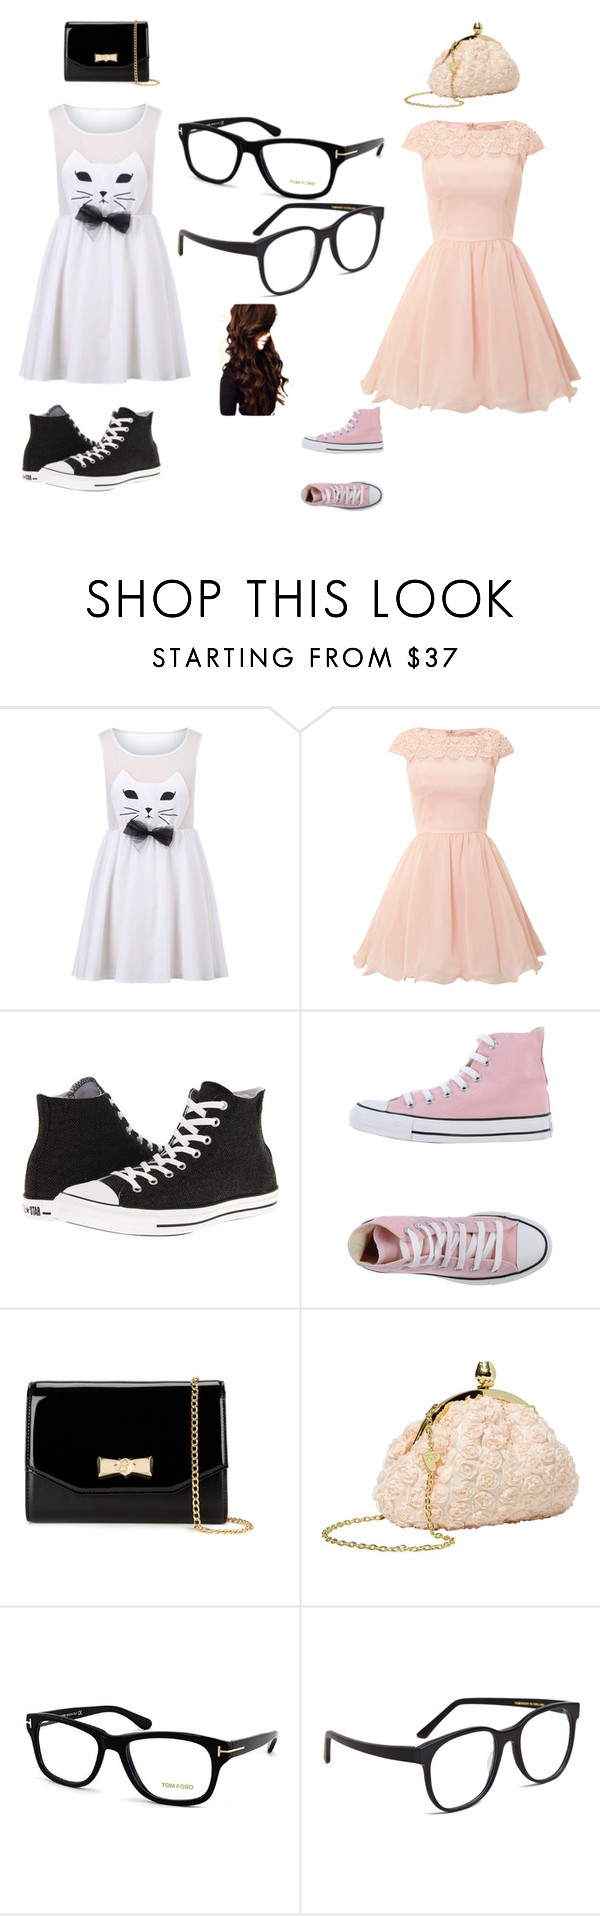 """""""NERD jk i love nerds"""" by fashion41323 ❤ liked on Polyvore featuring Chi Chi, Converse, Ted Baker, Betsey Johnson, Tom Ford and Larke"""